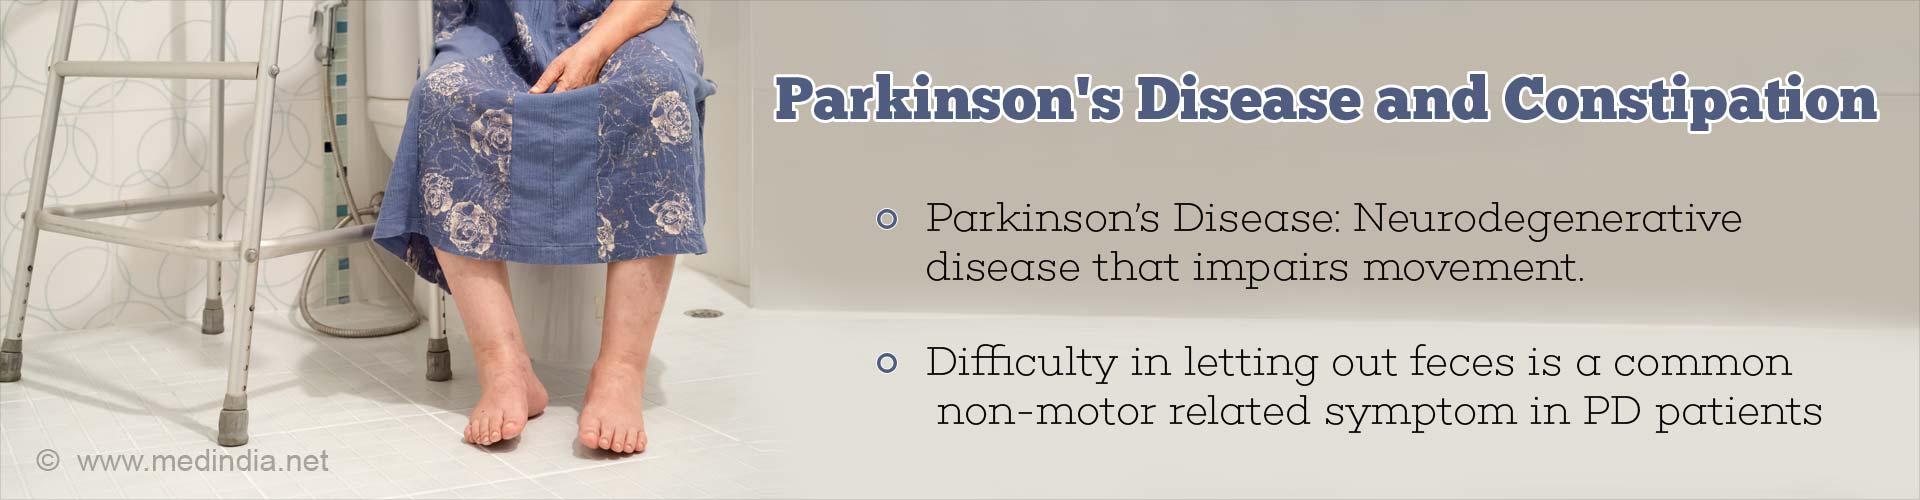 Parkinson's Disease and Constipation